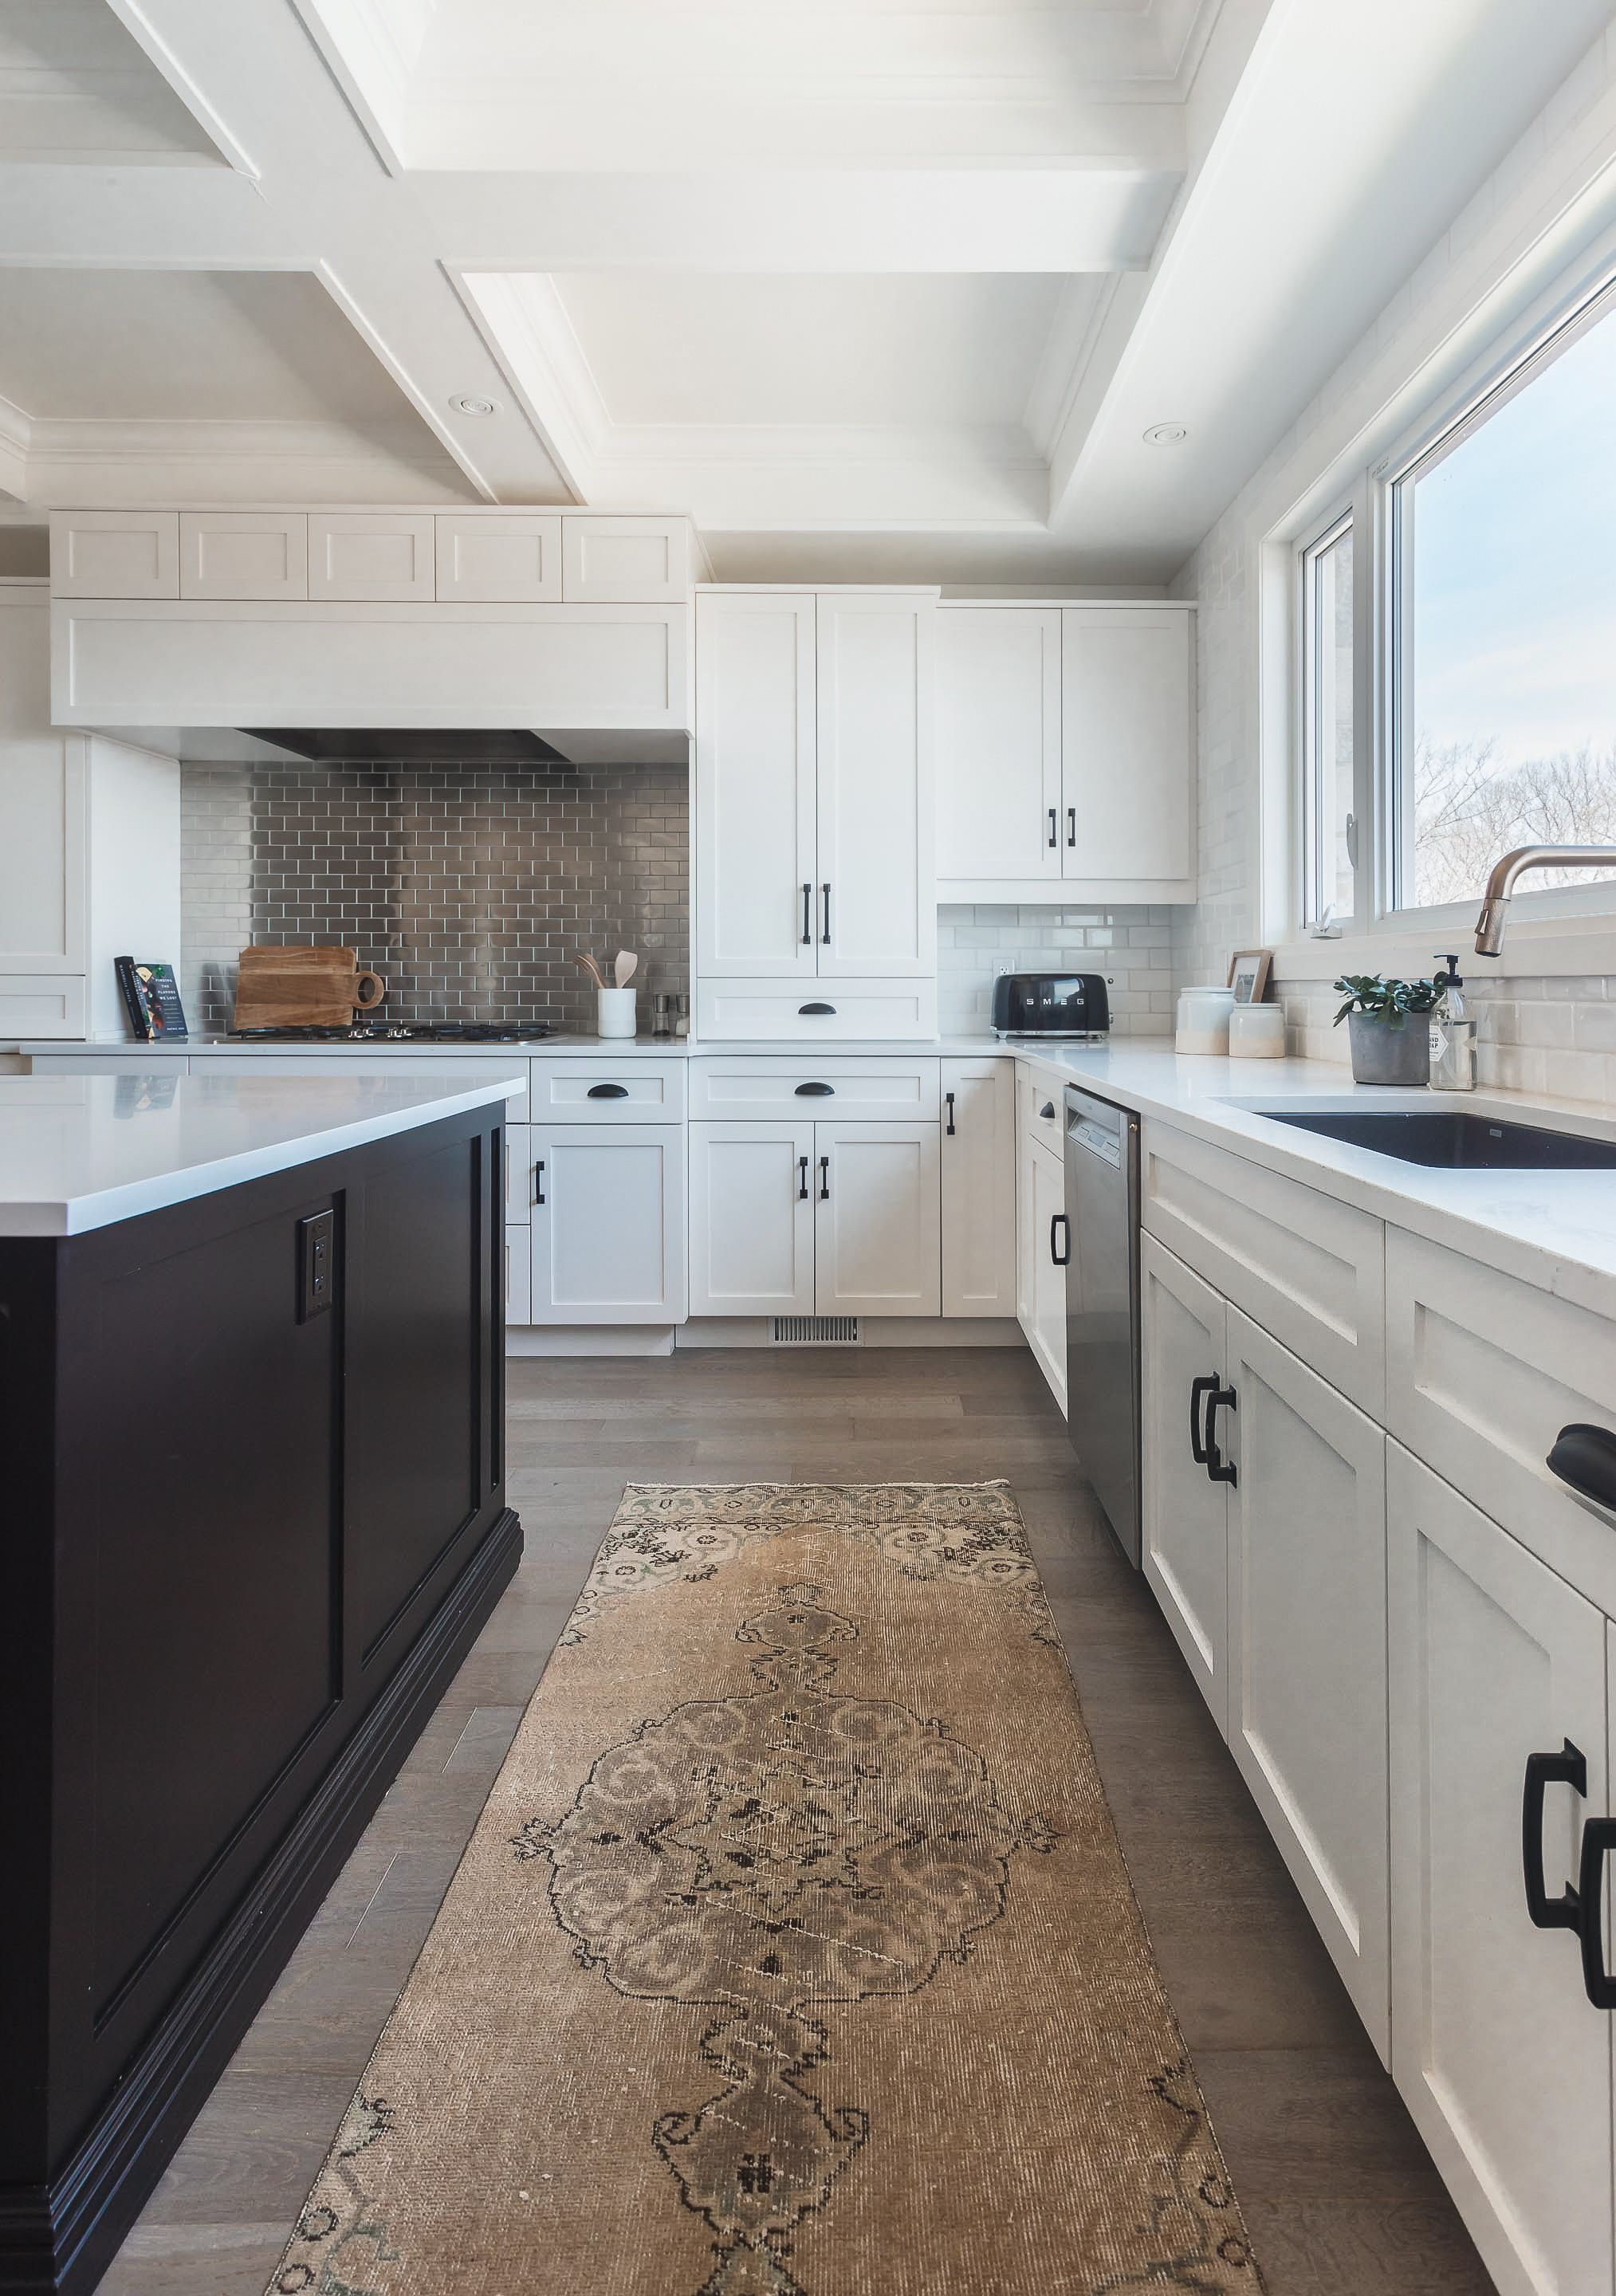 Niagara Project Entry Dining Kitchen And Living Coco Jack In 2020 Home Kitchens Kitchen Architectural Pieces